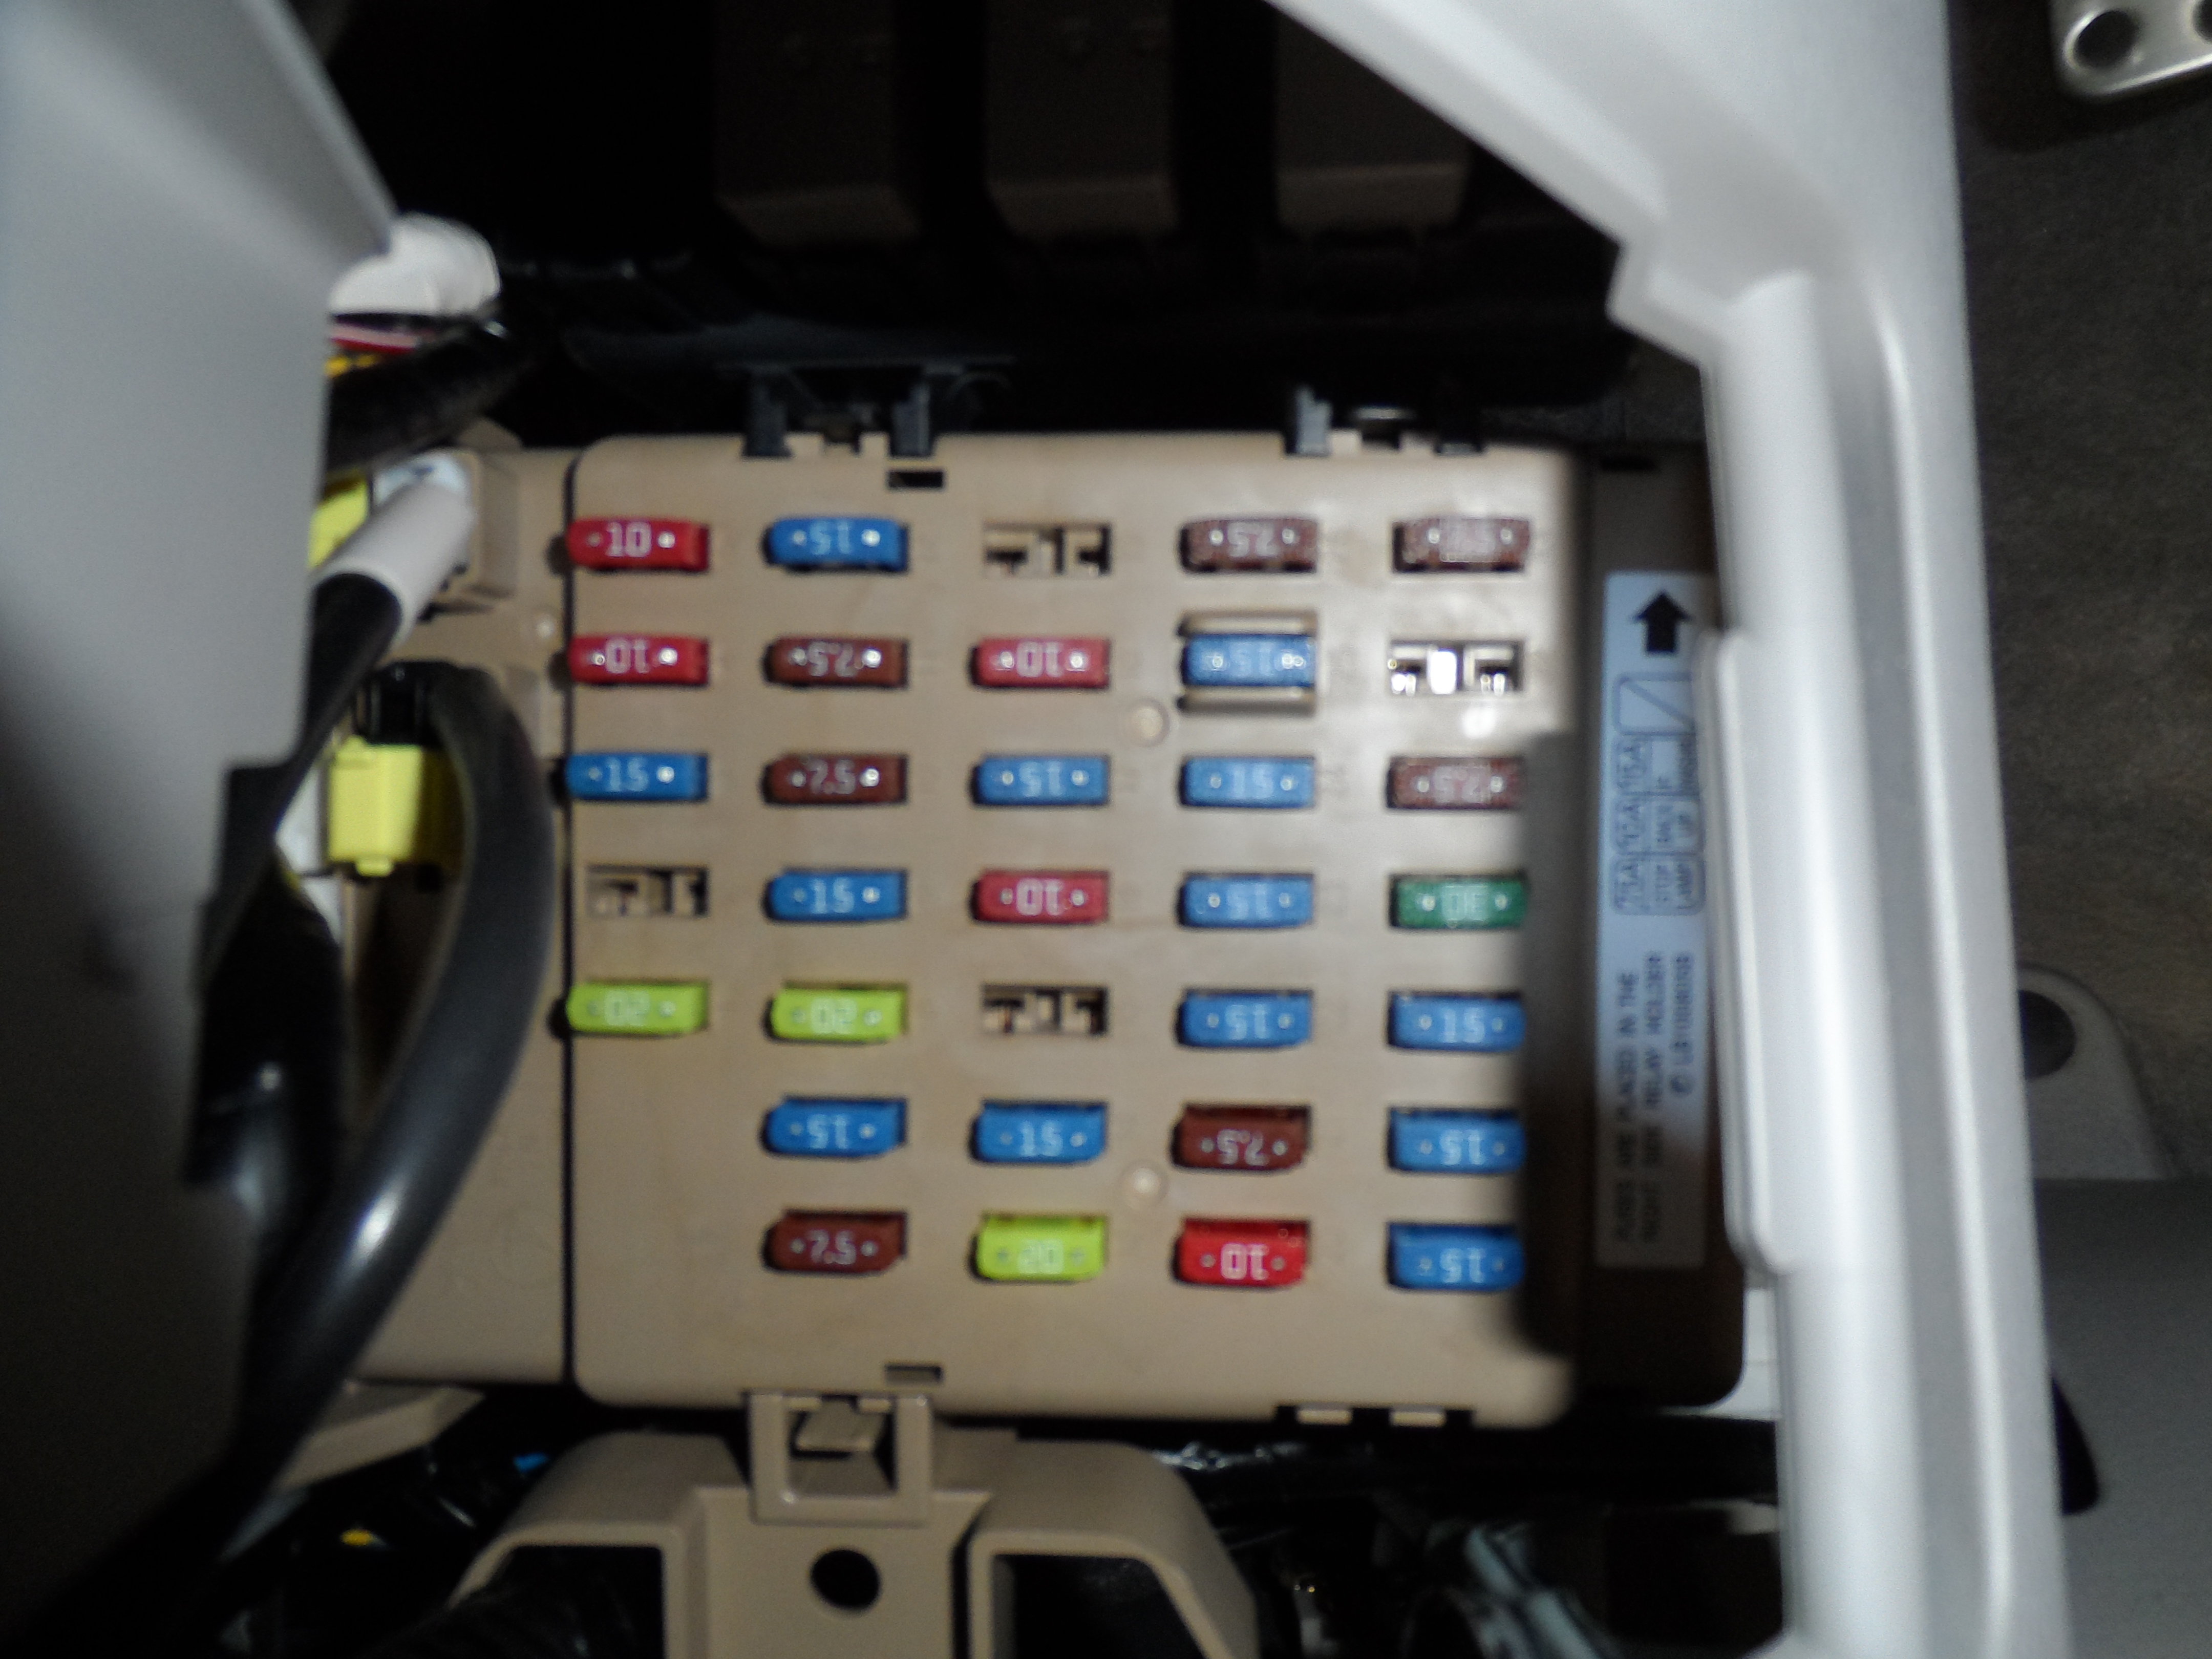 2011 Subaru Legacy Fuse Box Diagram Additionally Subaru Outback Fuse